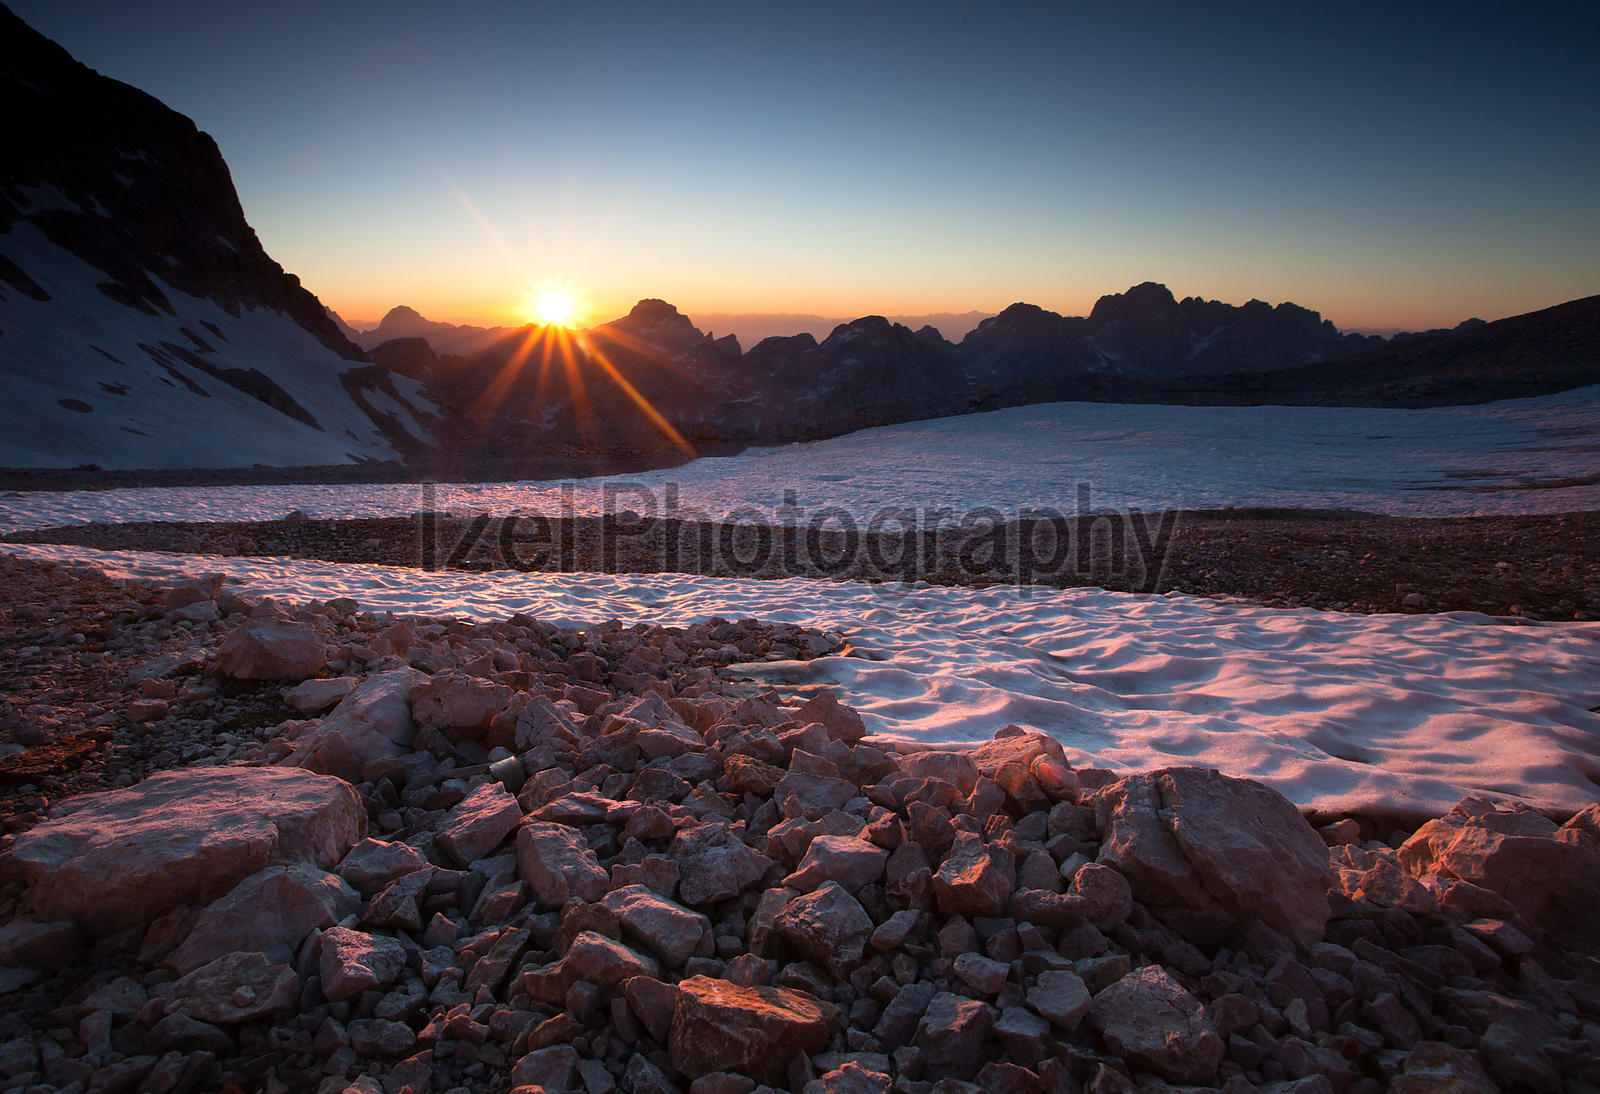 Sunset over the Julian Alps - Mountain Photography